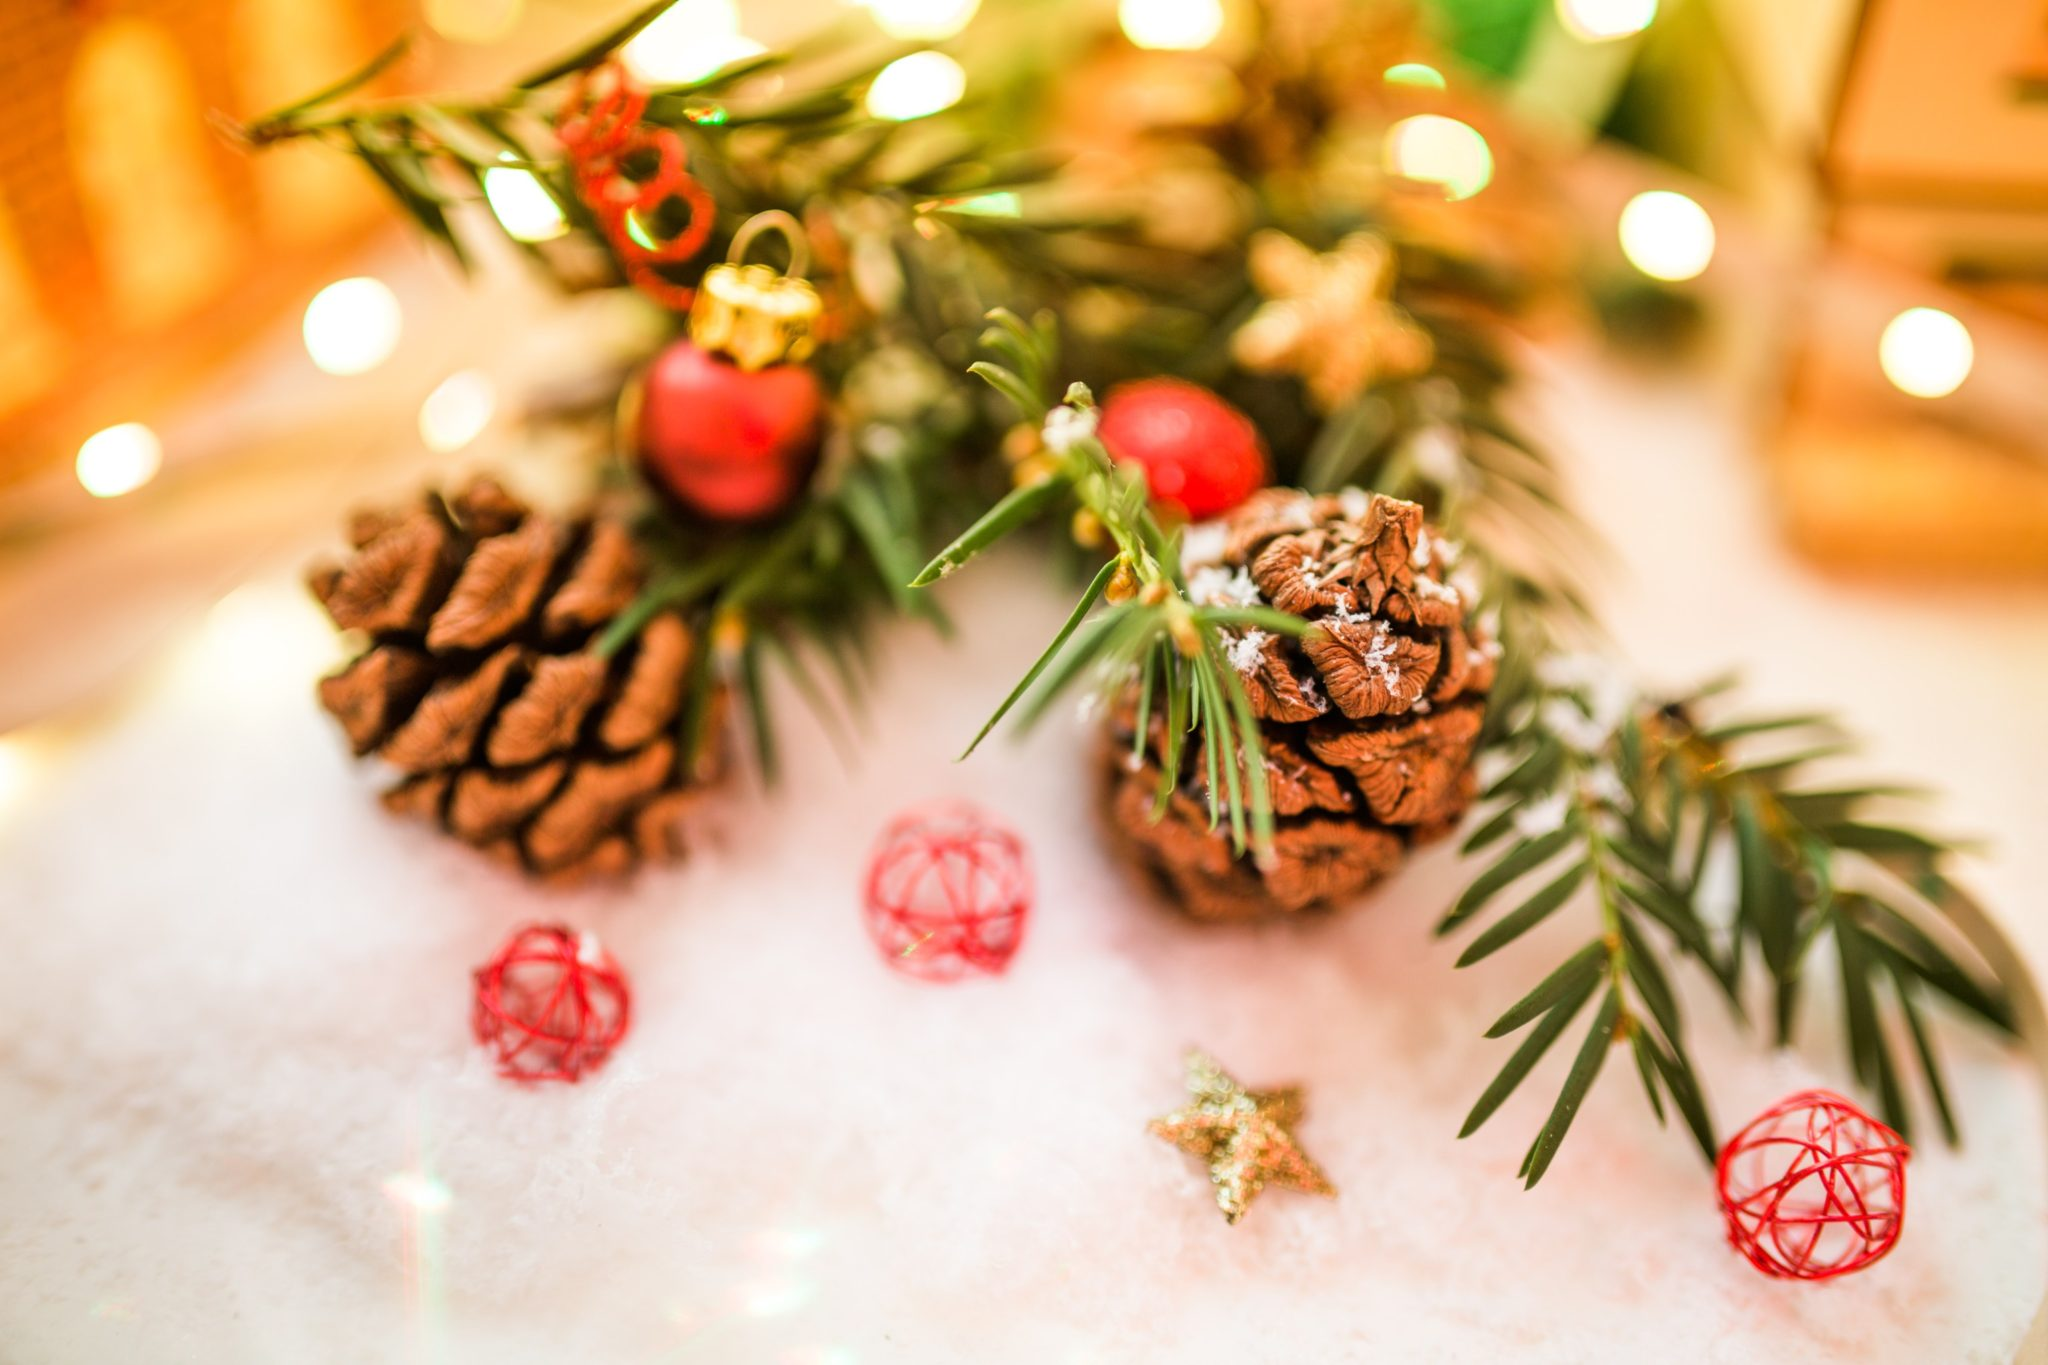 Holiday ornament by Luis Llerena from stocksnap.io